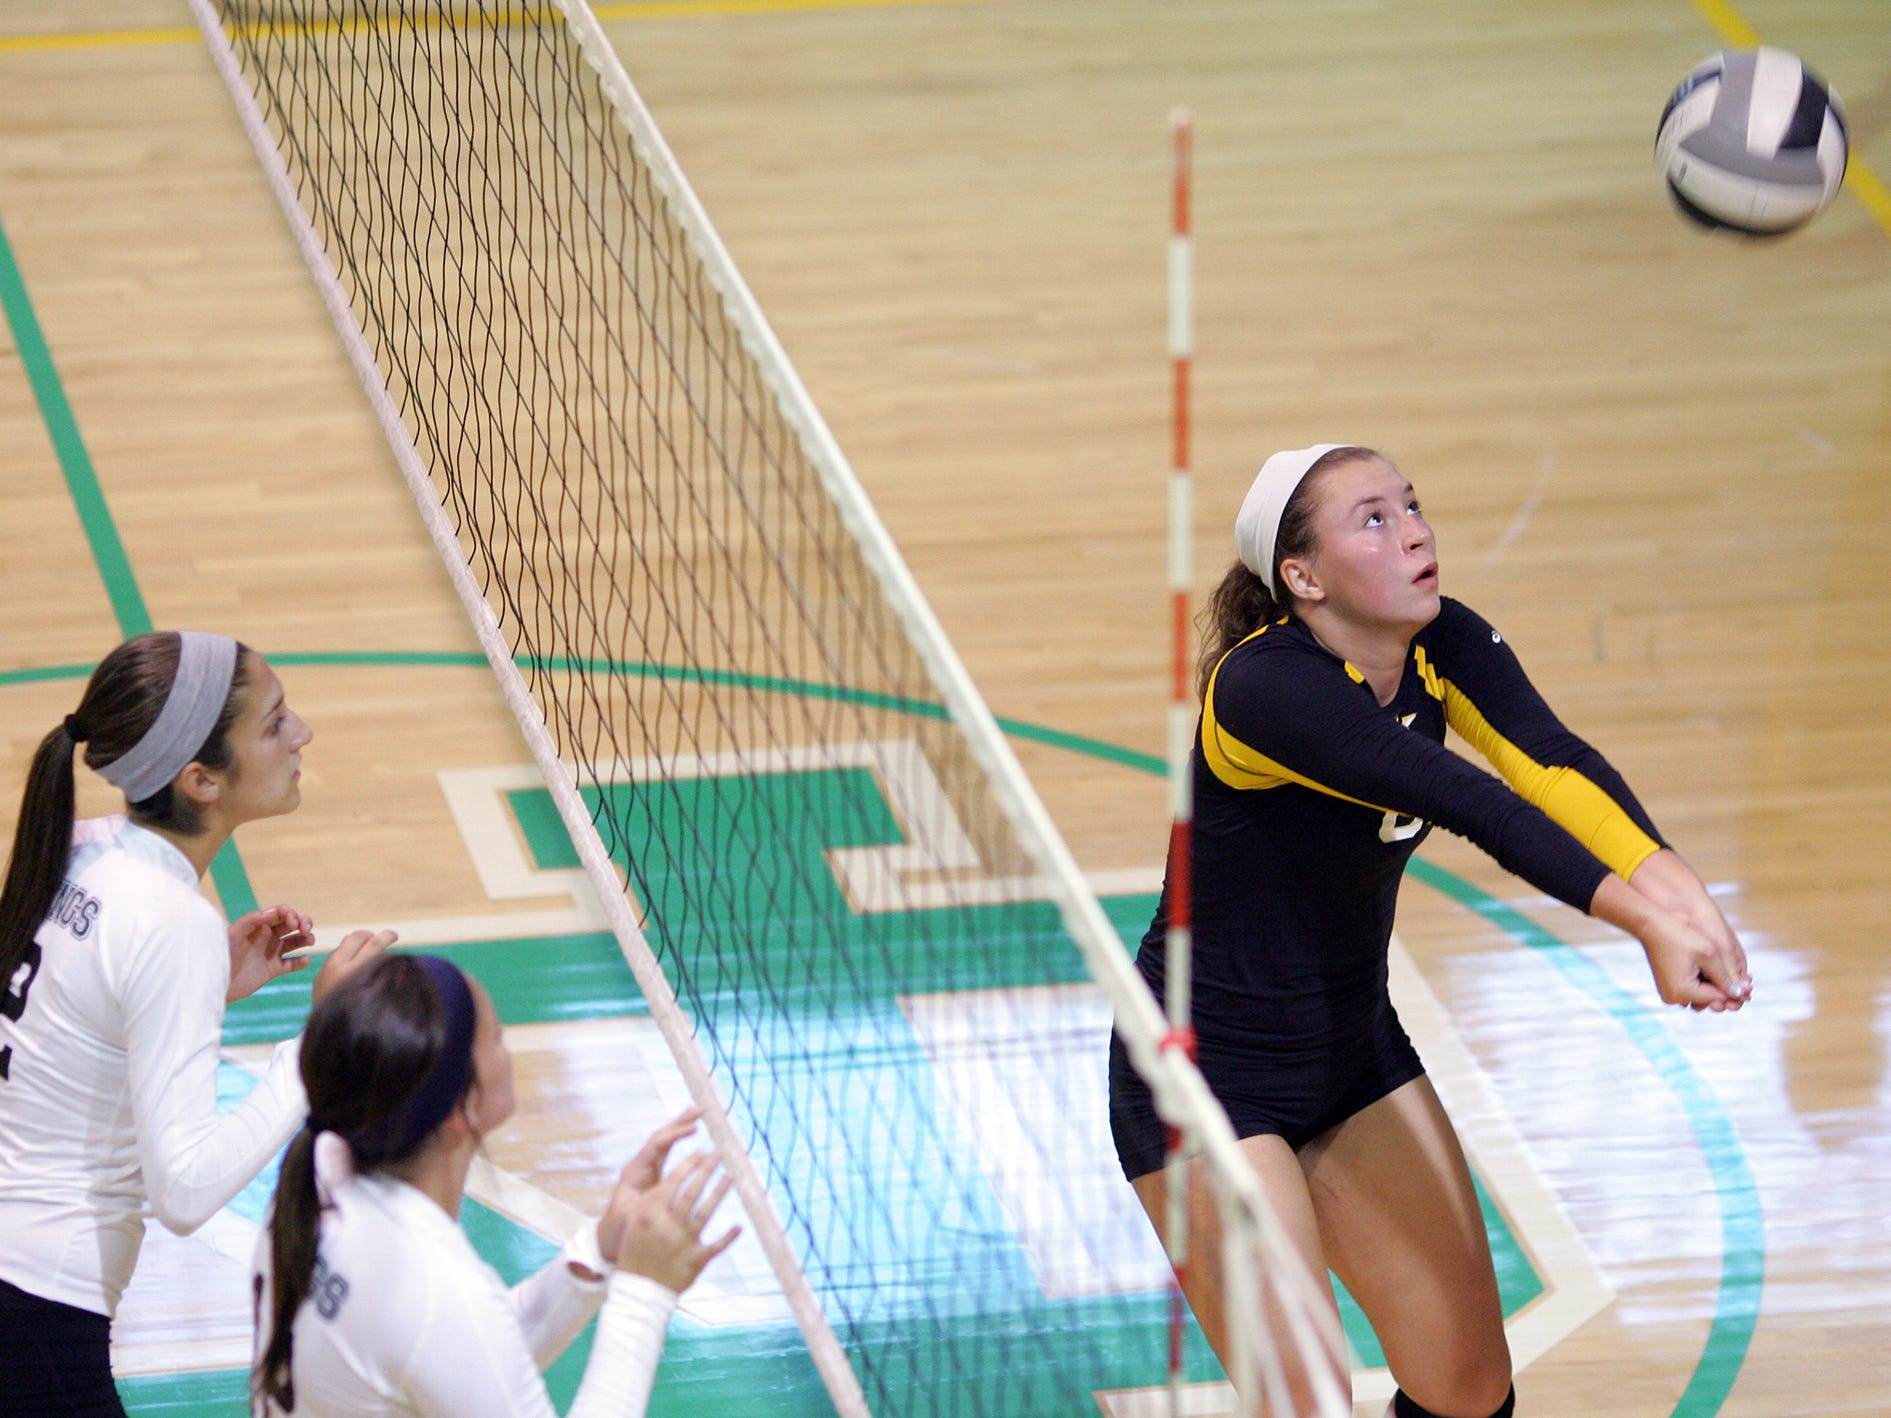 Watkins Memorial's Margaret Musselman eyes the ball this past Friday during a match against Northridge during the Newark Catholic Preview.